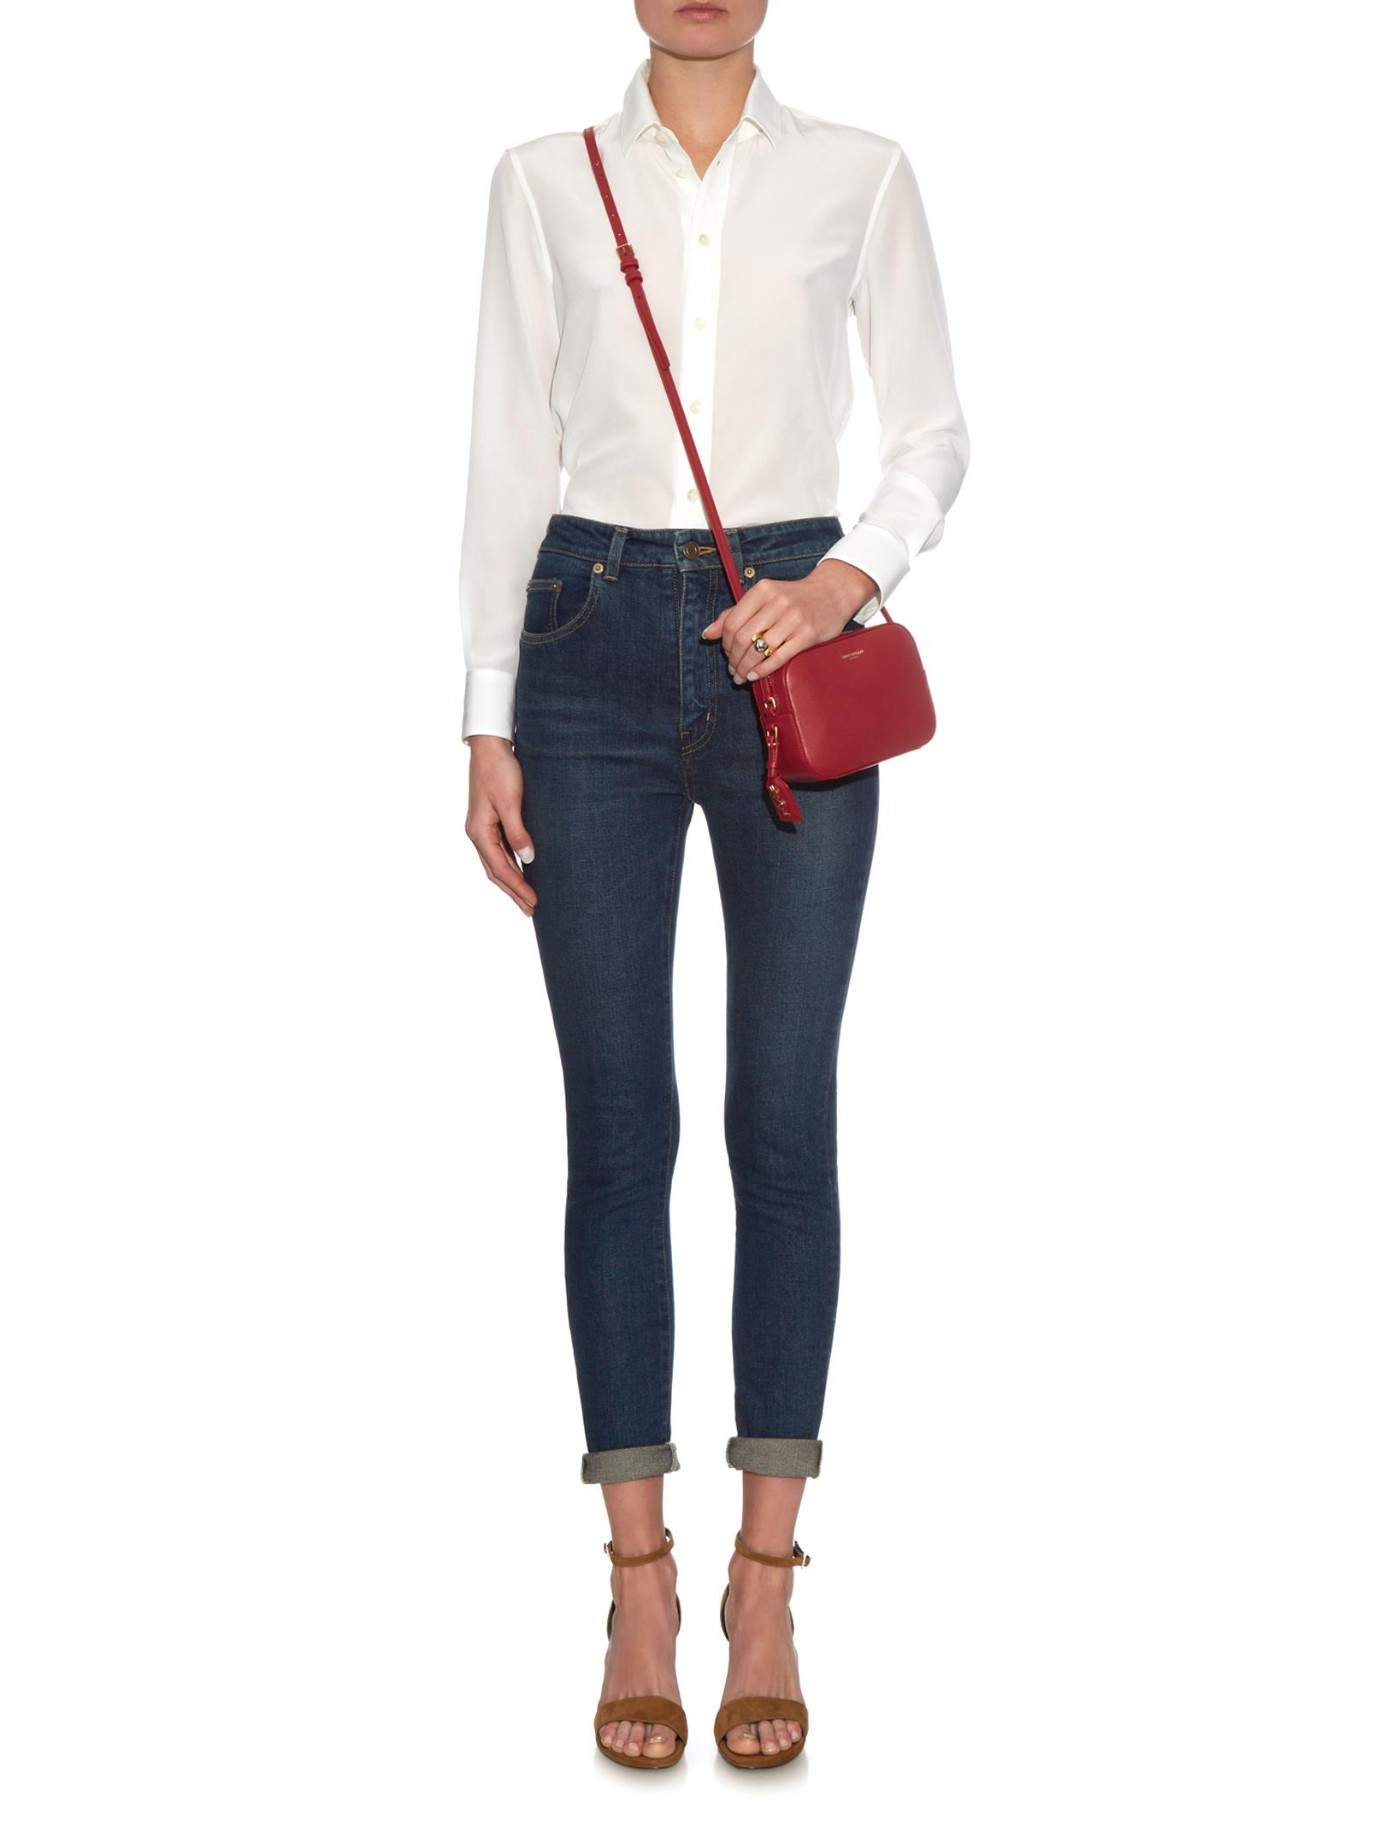 9eea09a85b Saint Laurent Monogram Small Leather Cross-body Bag in Red - Lyst